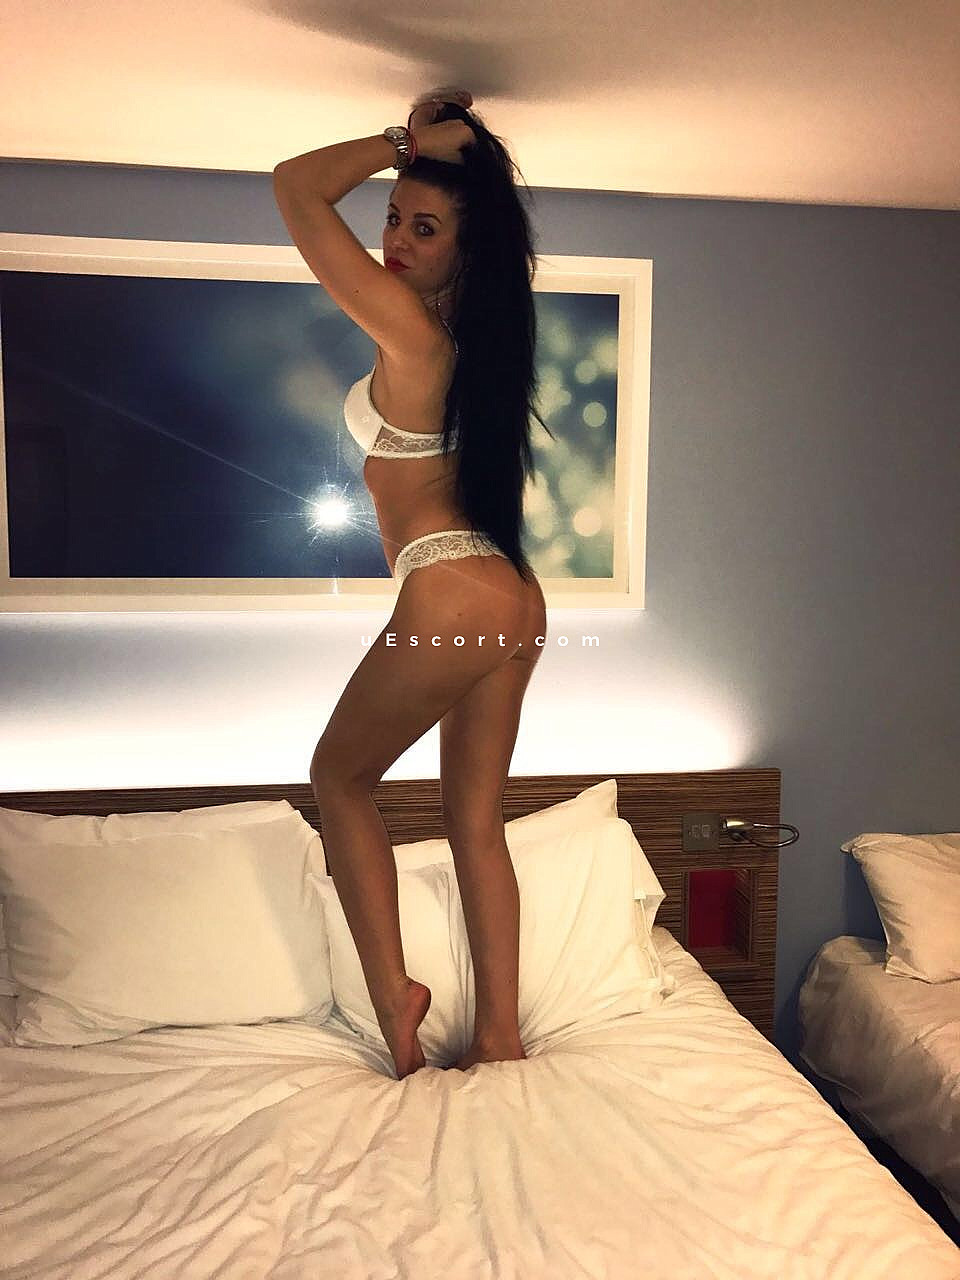 Aberdeen girls escorts